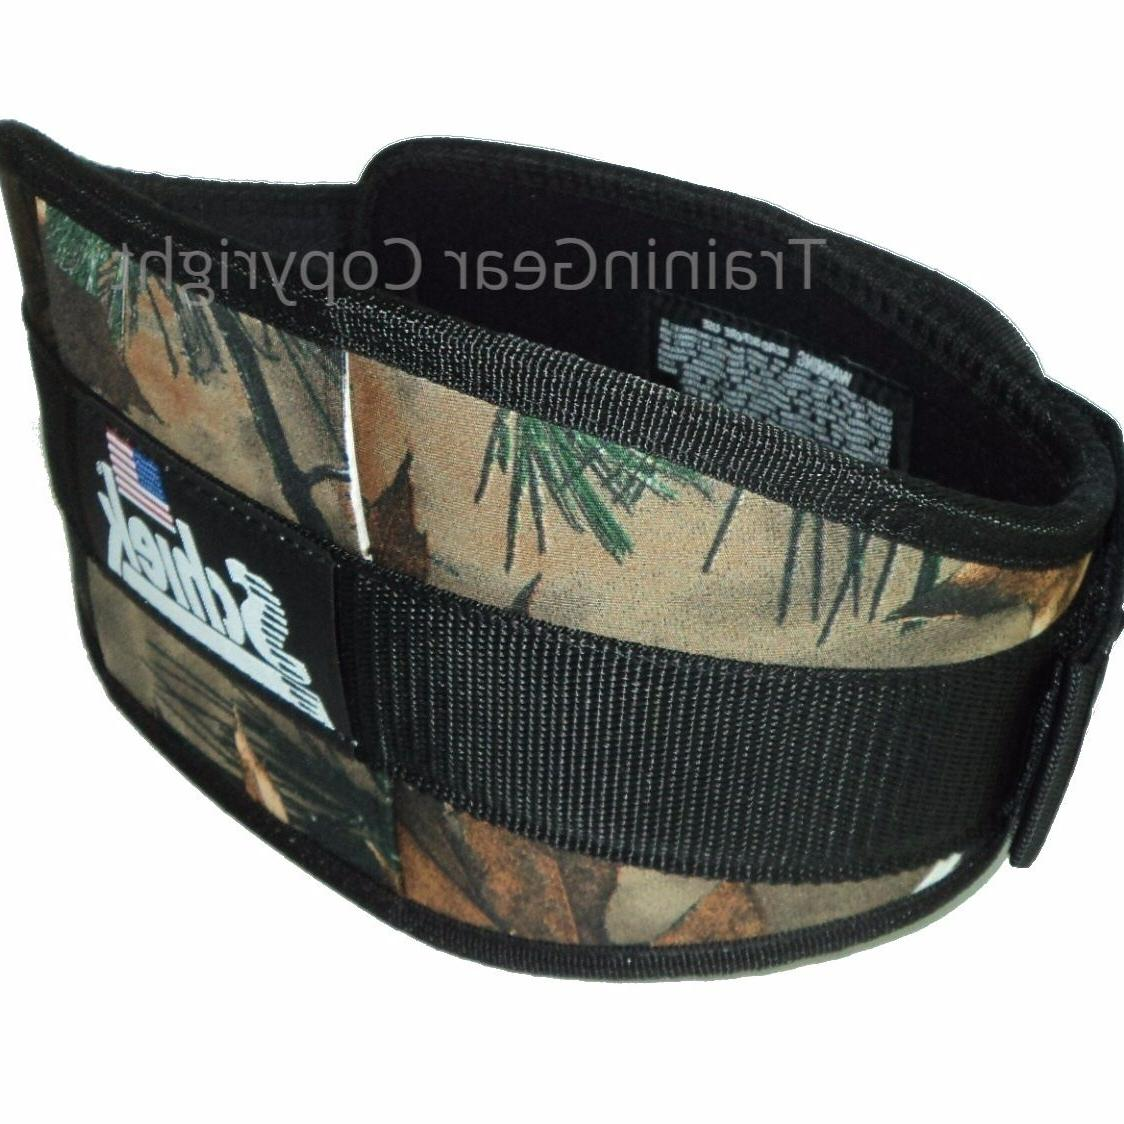 weight lifting belt 2006 6 camo fitness